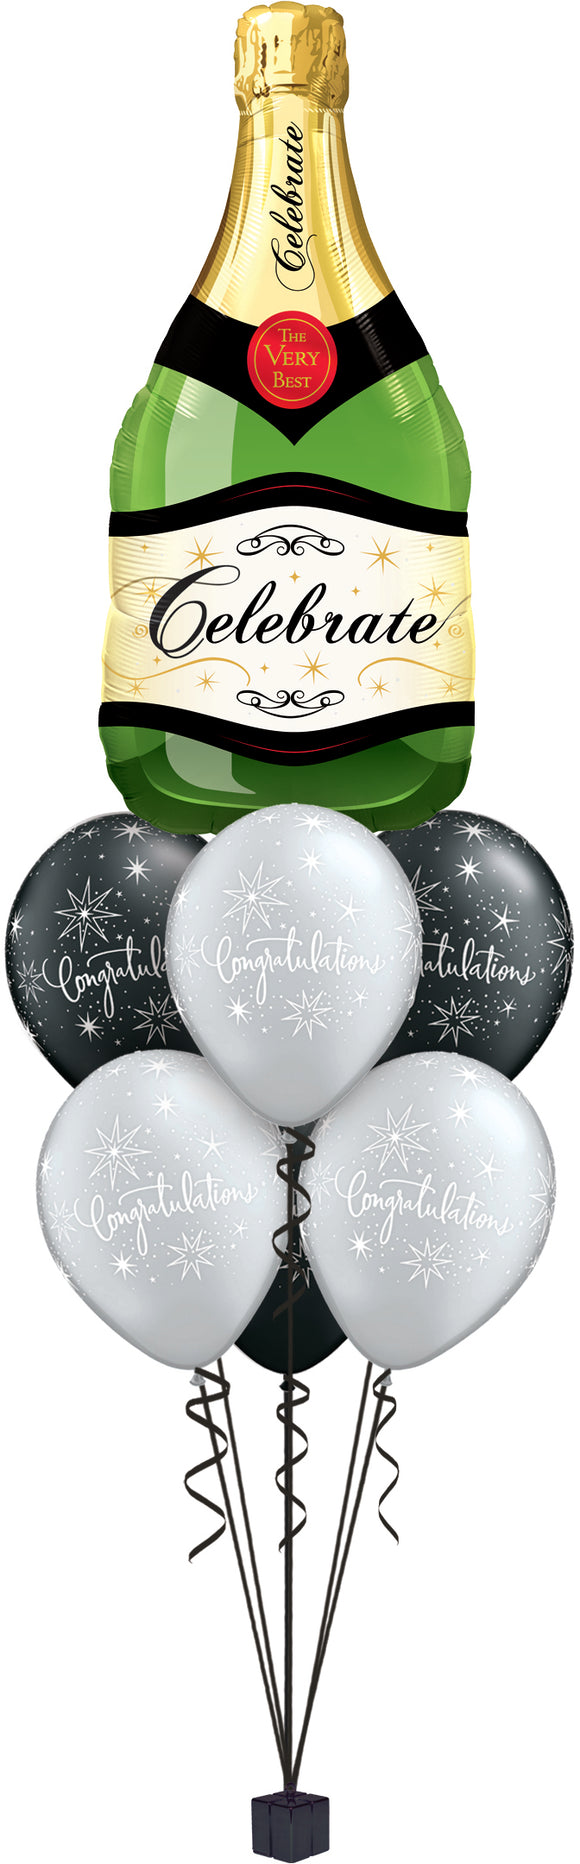 Champagne Bottle Celebration Balloon Cluster